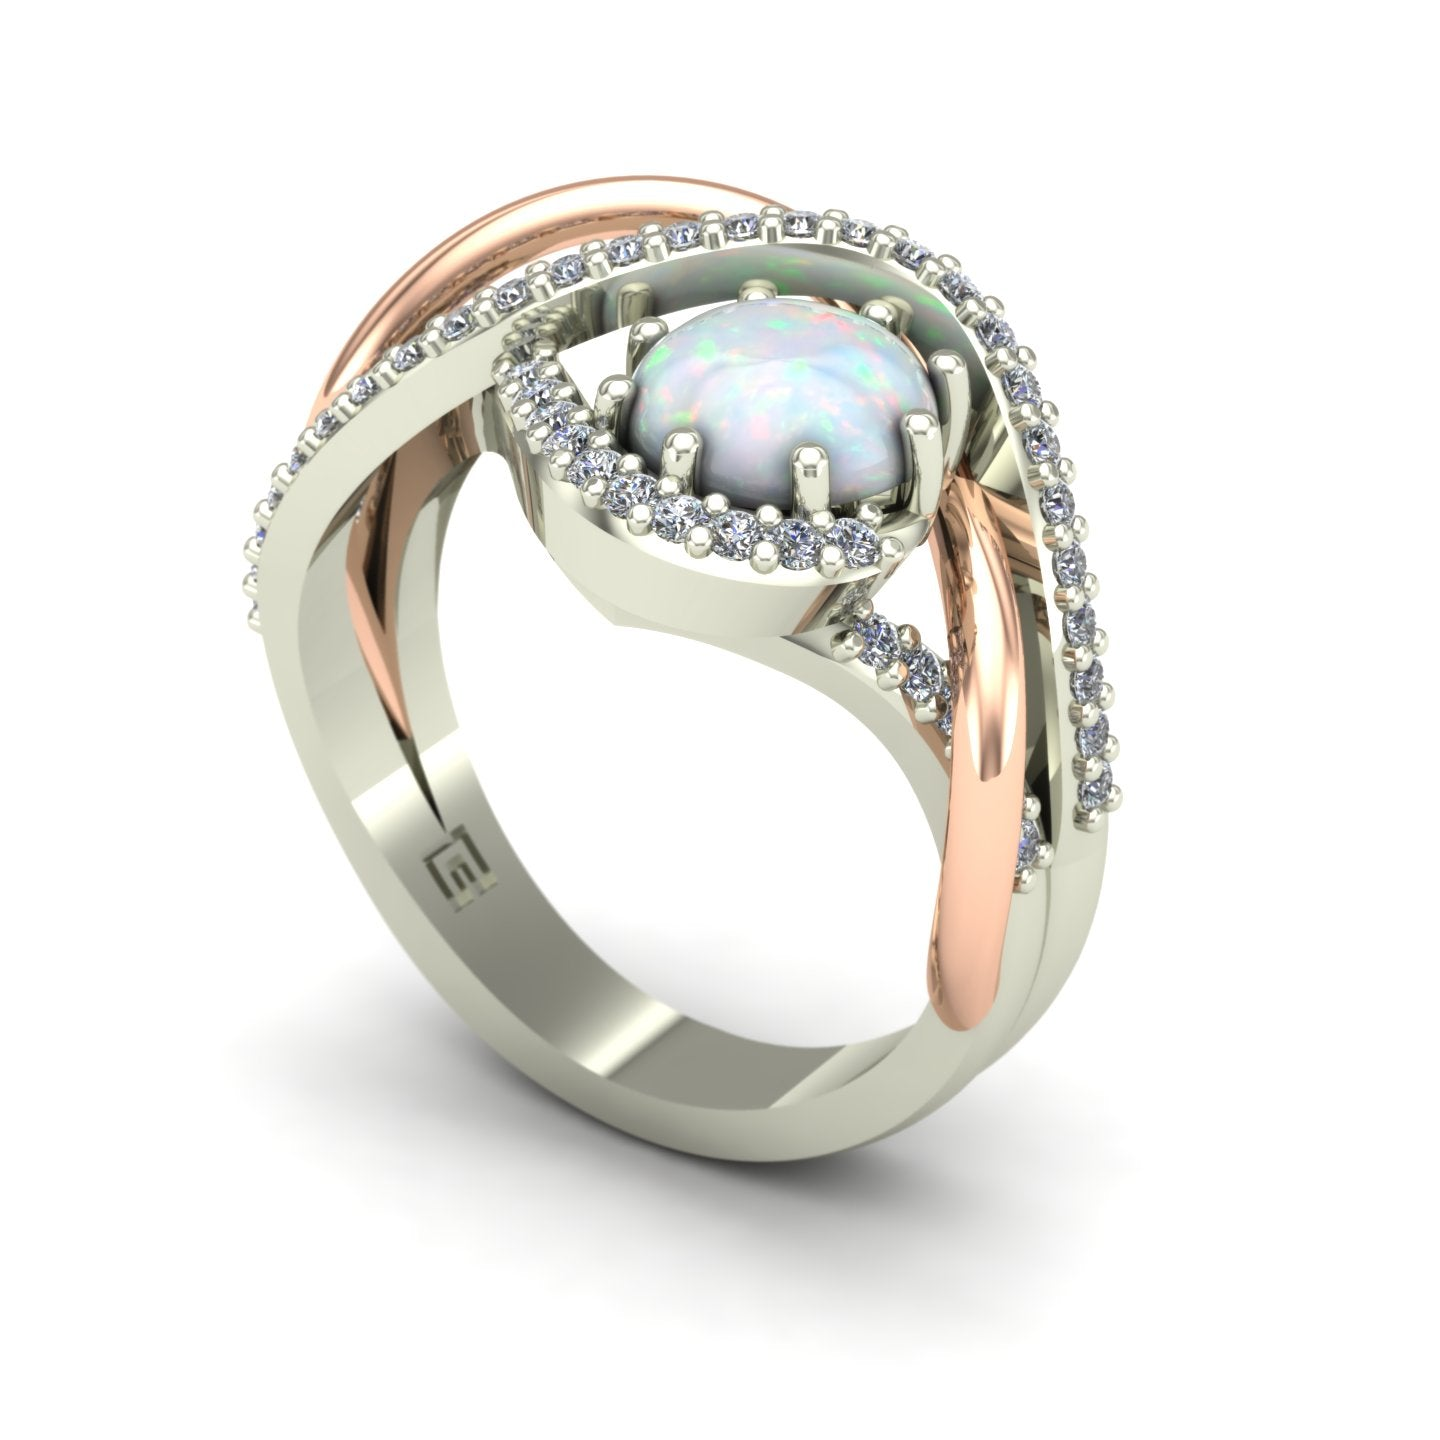 Opal and diamond ring in 14k rose and white gold